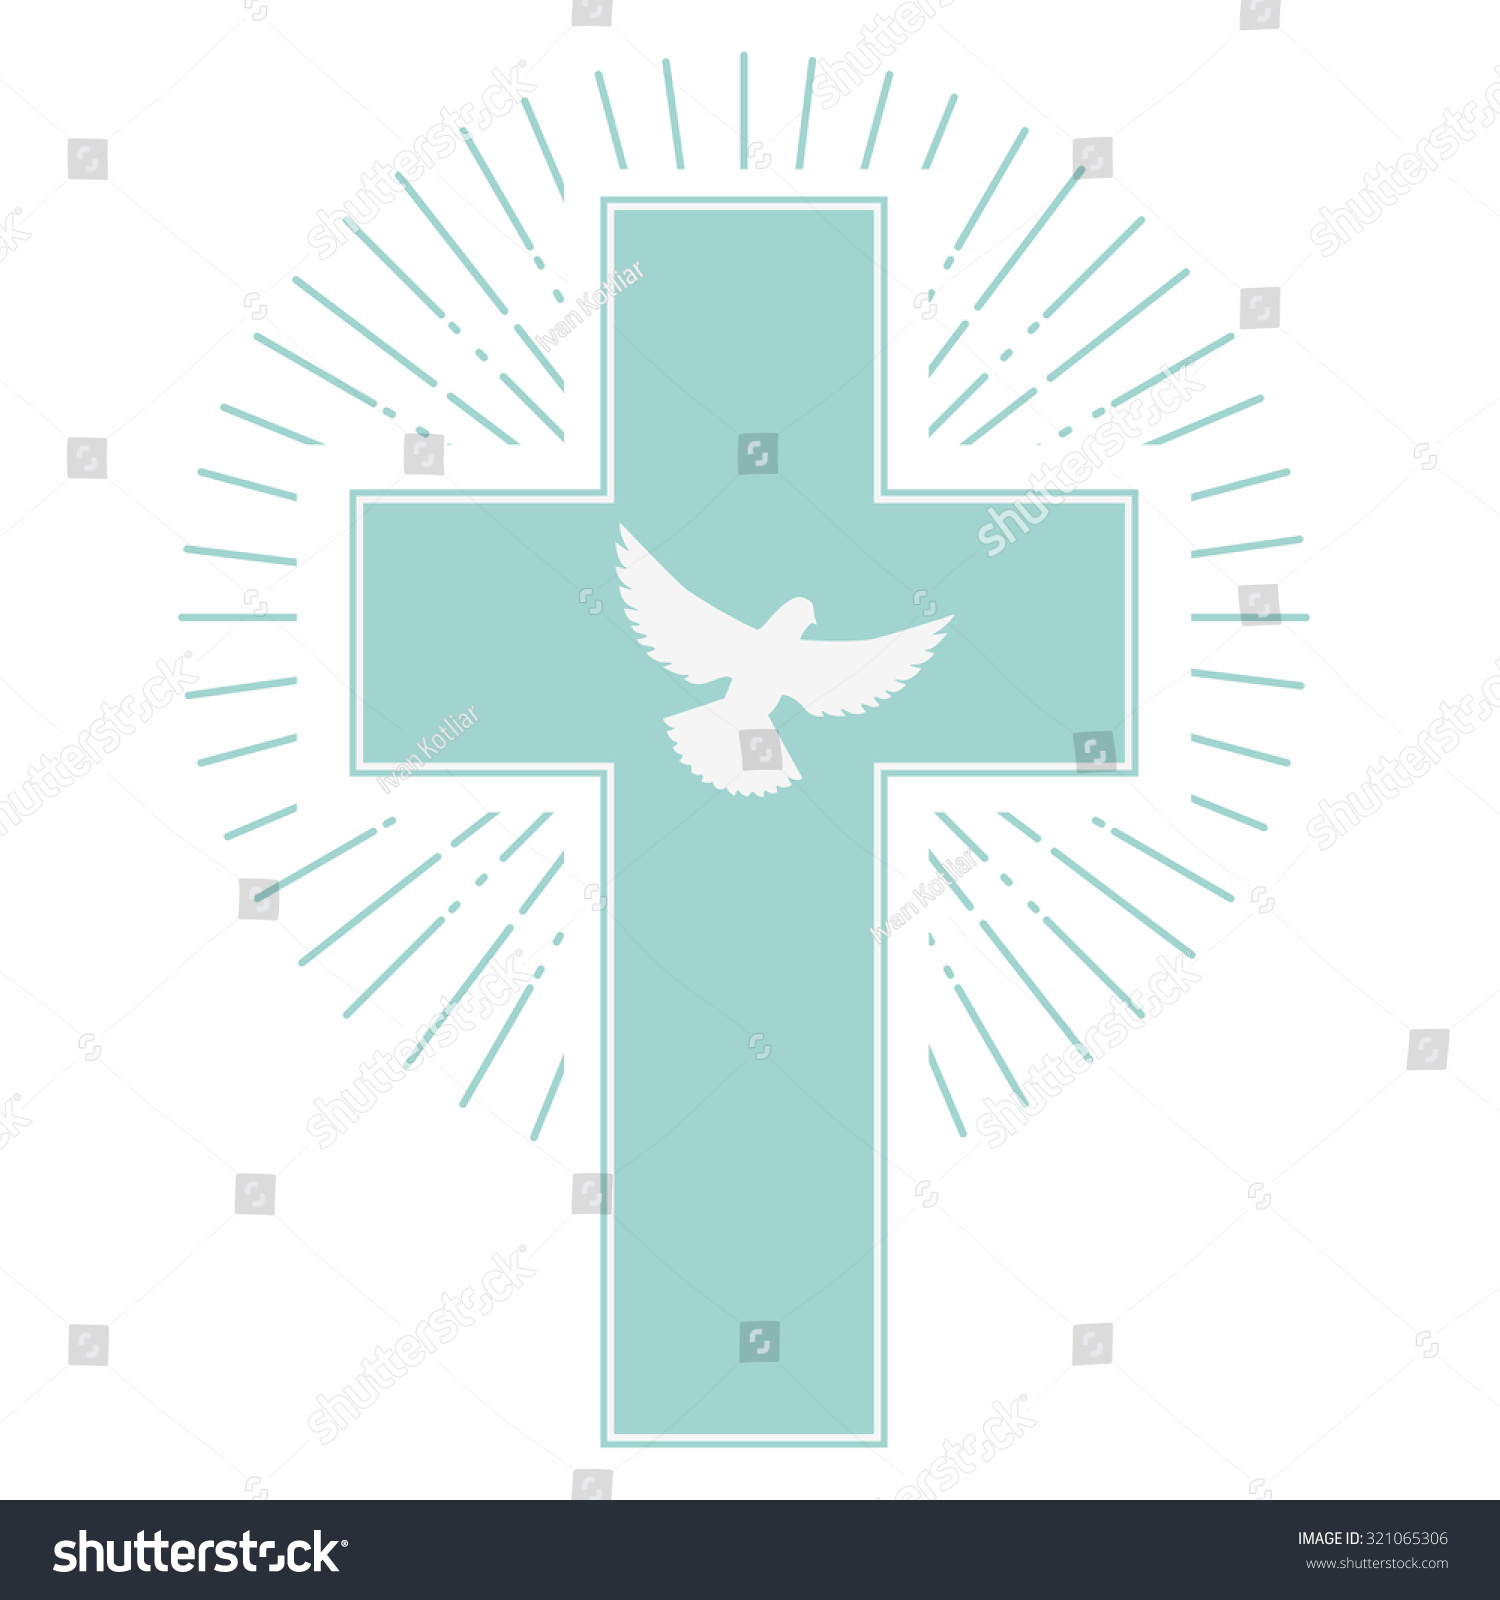 Cross and dove background - photo#19